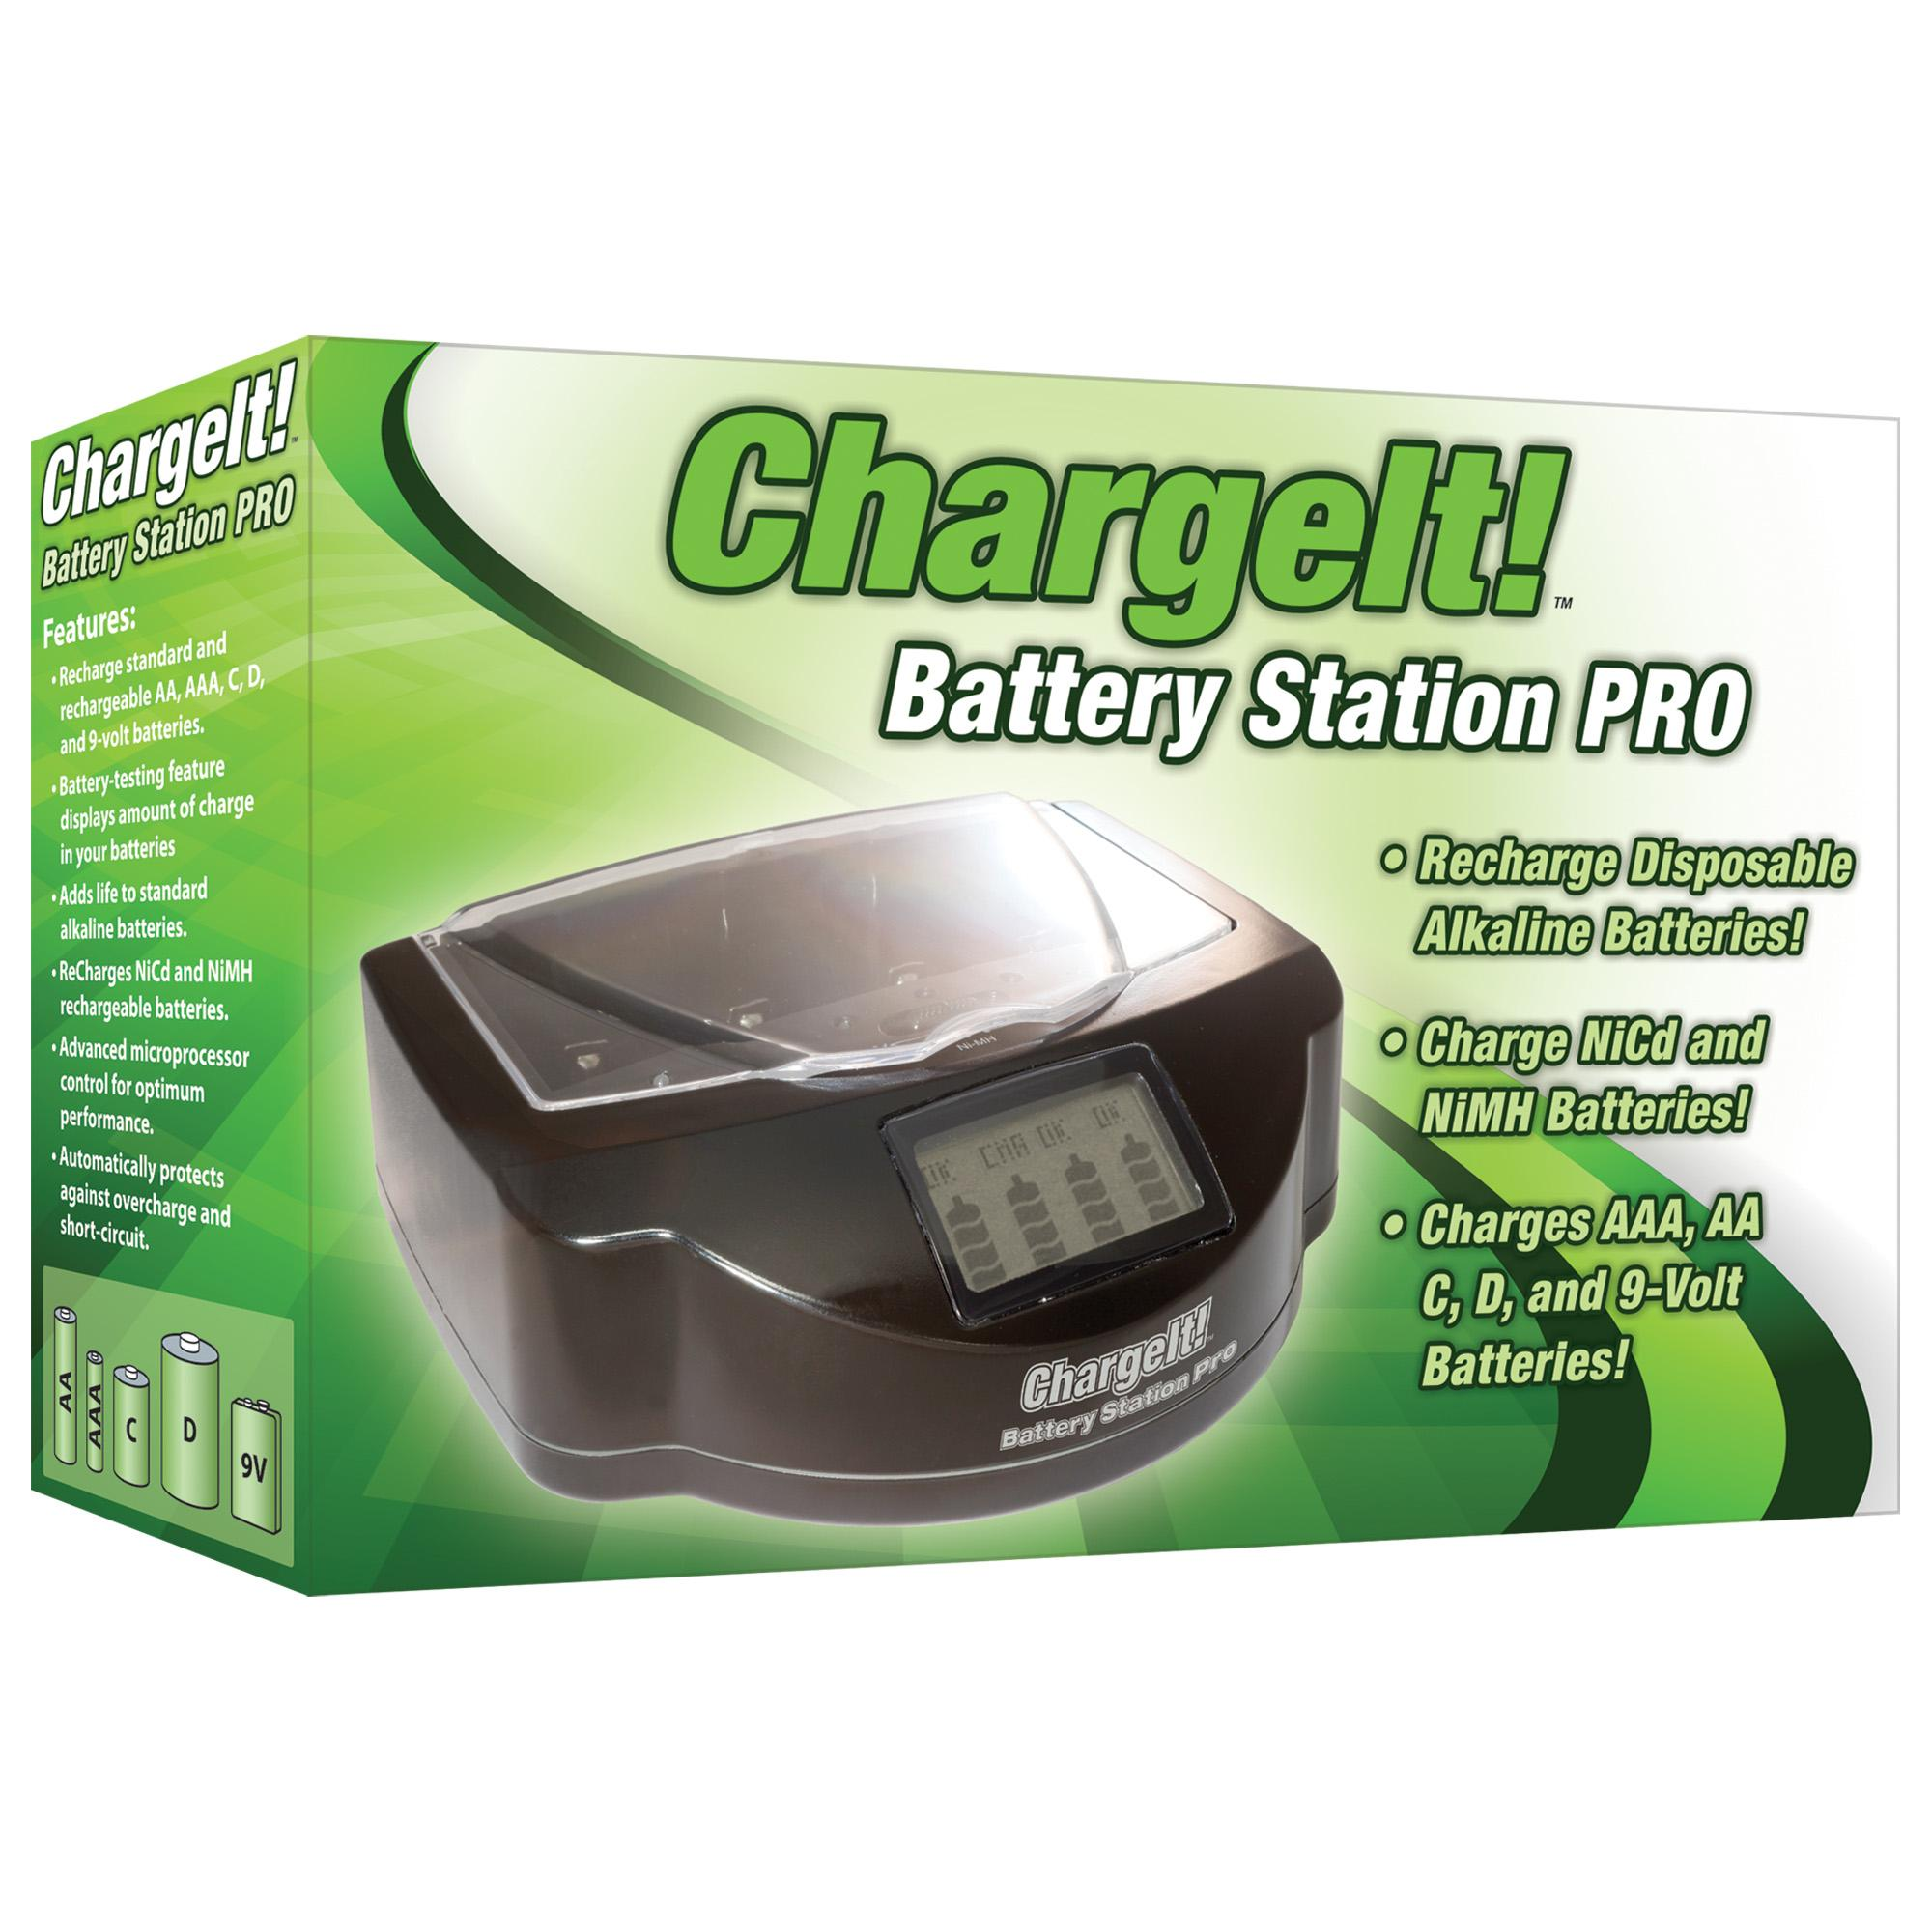 ChargeIt! Battery Station Pro